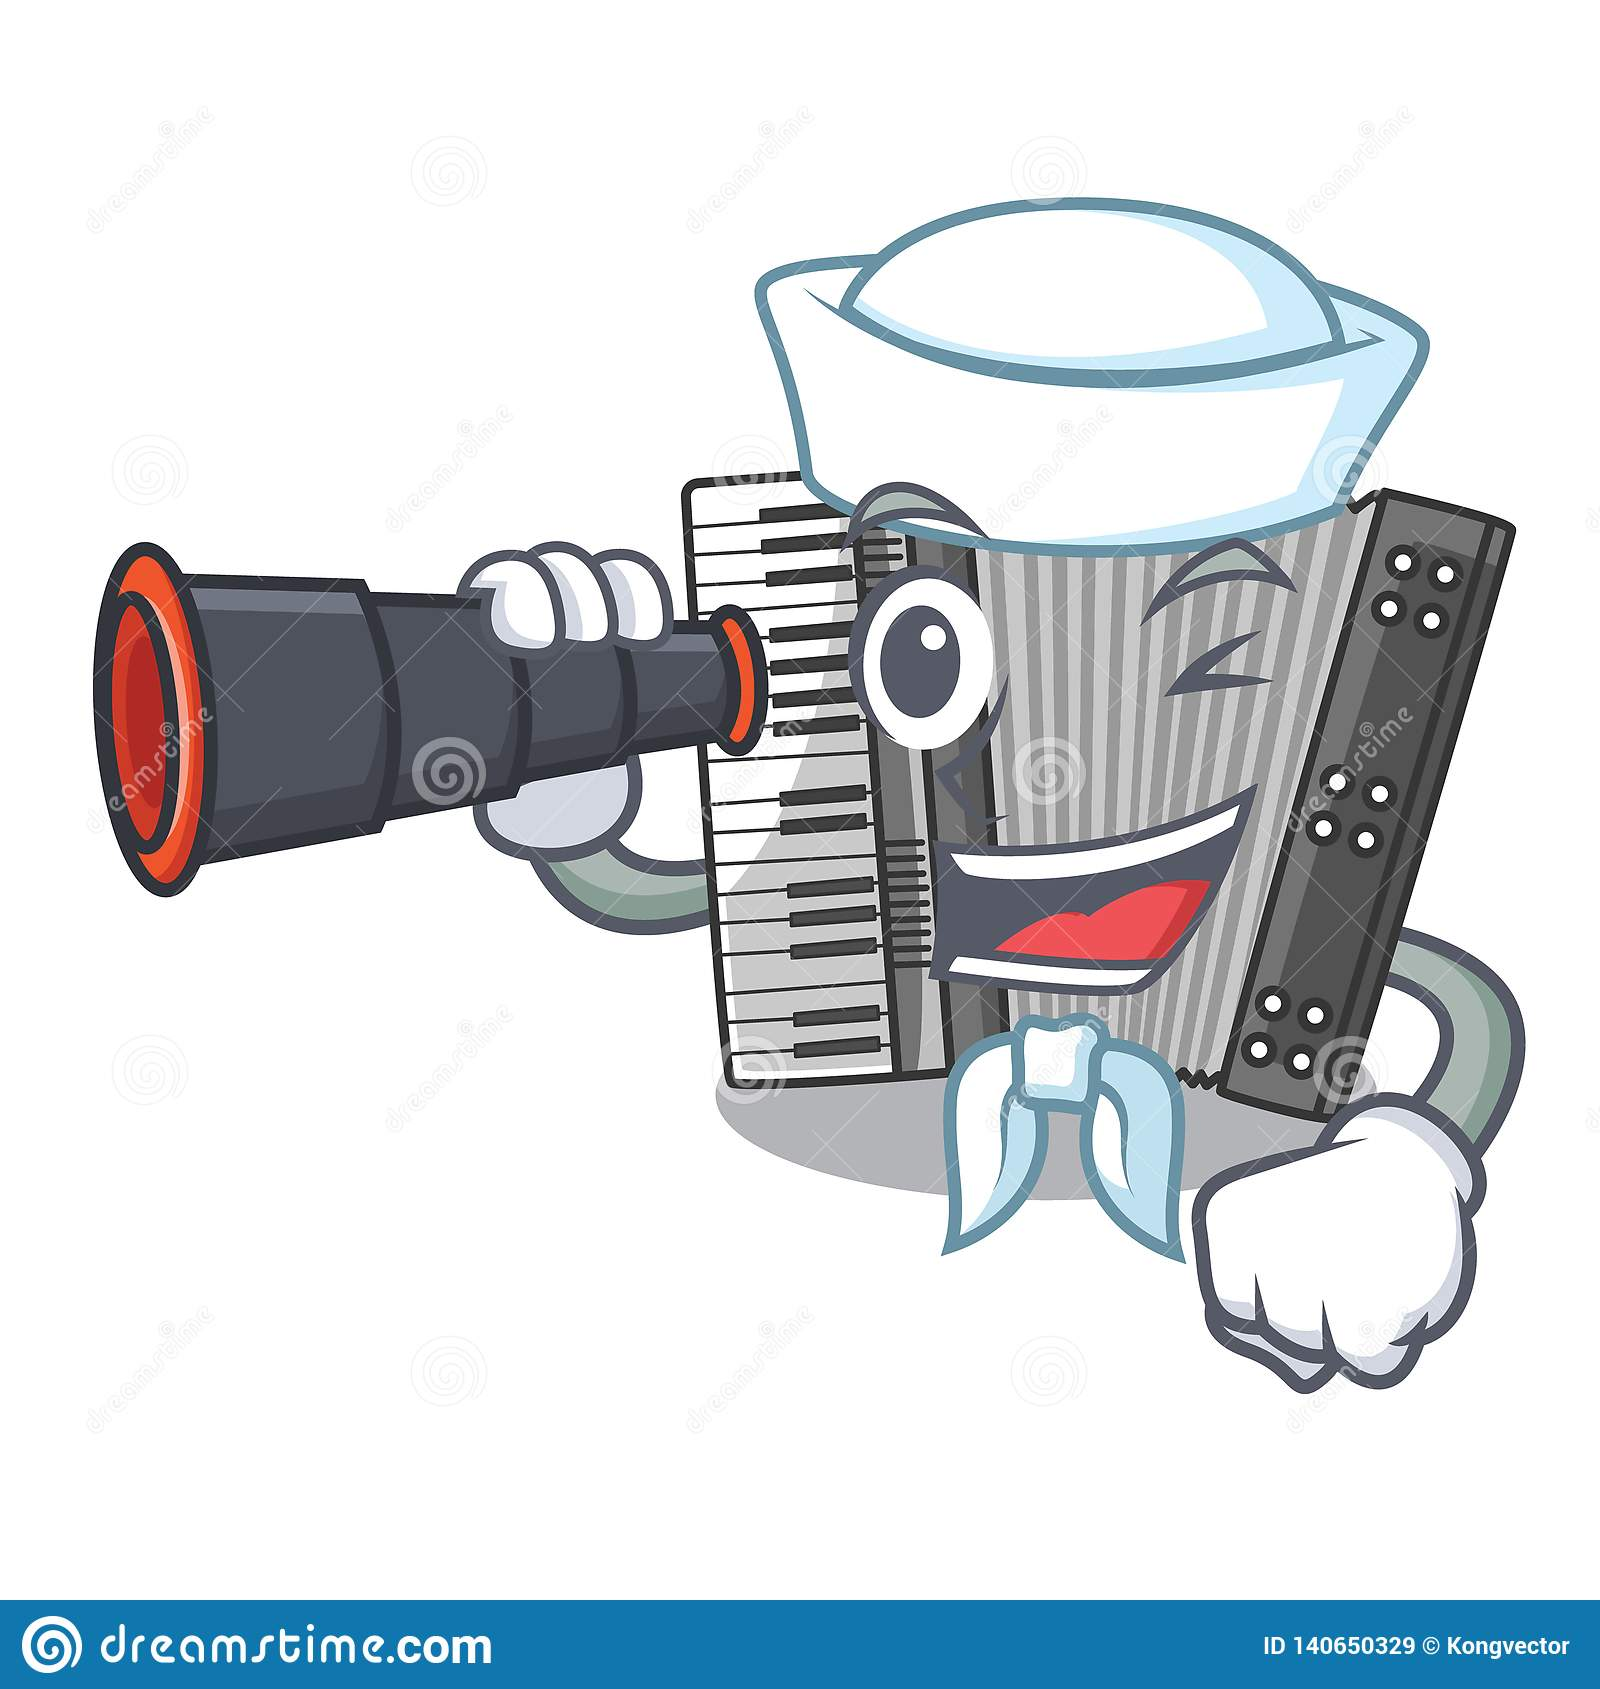 sailor-binocular-miniature-accrodion-shape-mascot-vector-illustrattion-140650329